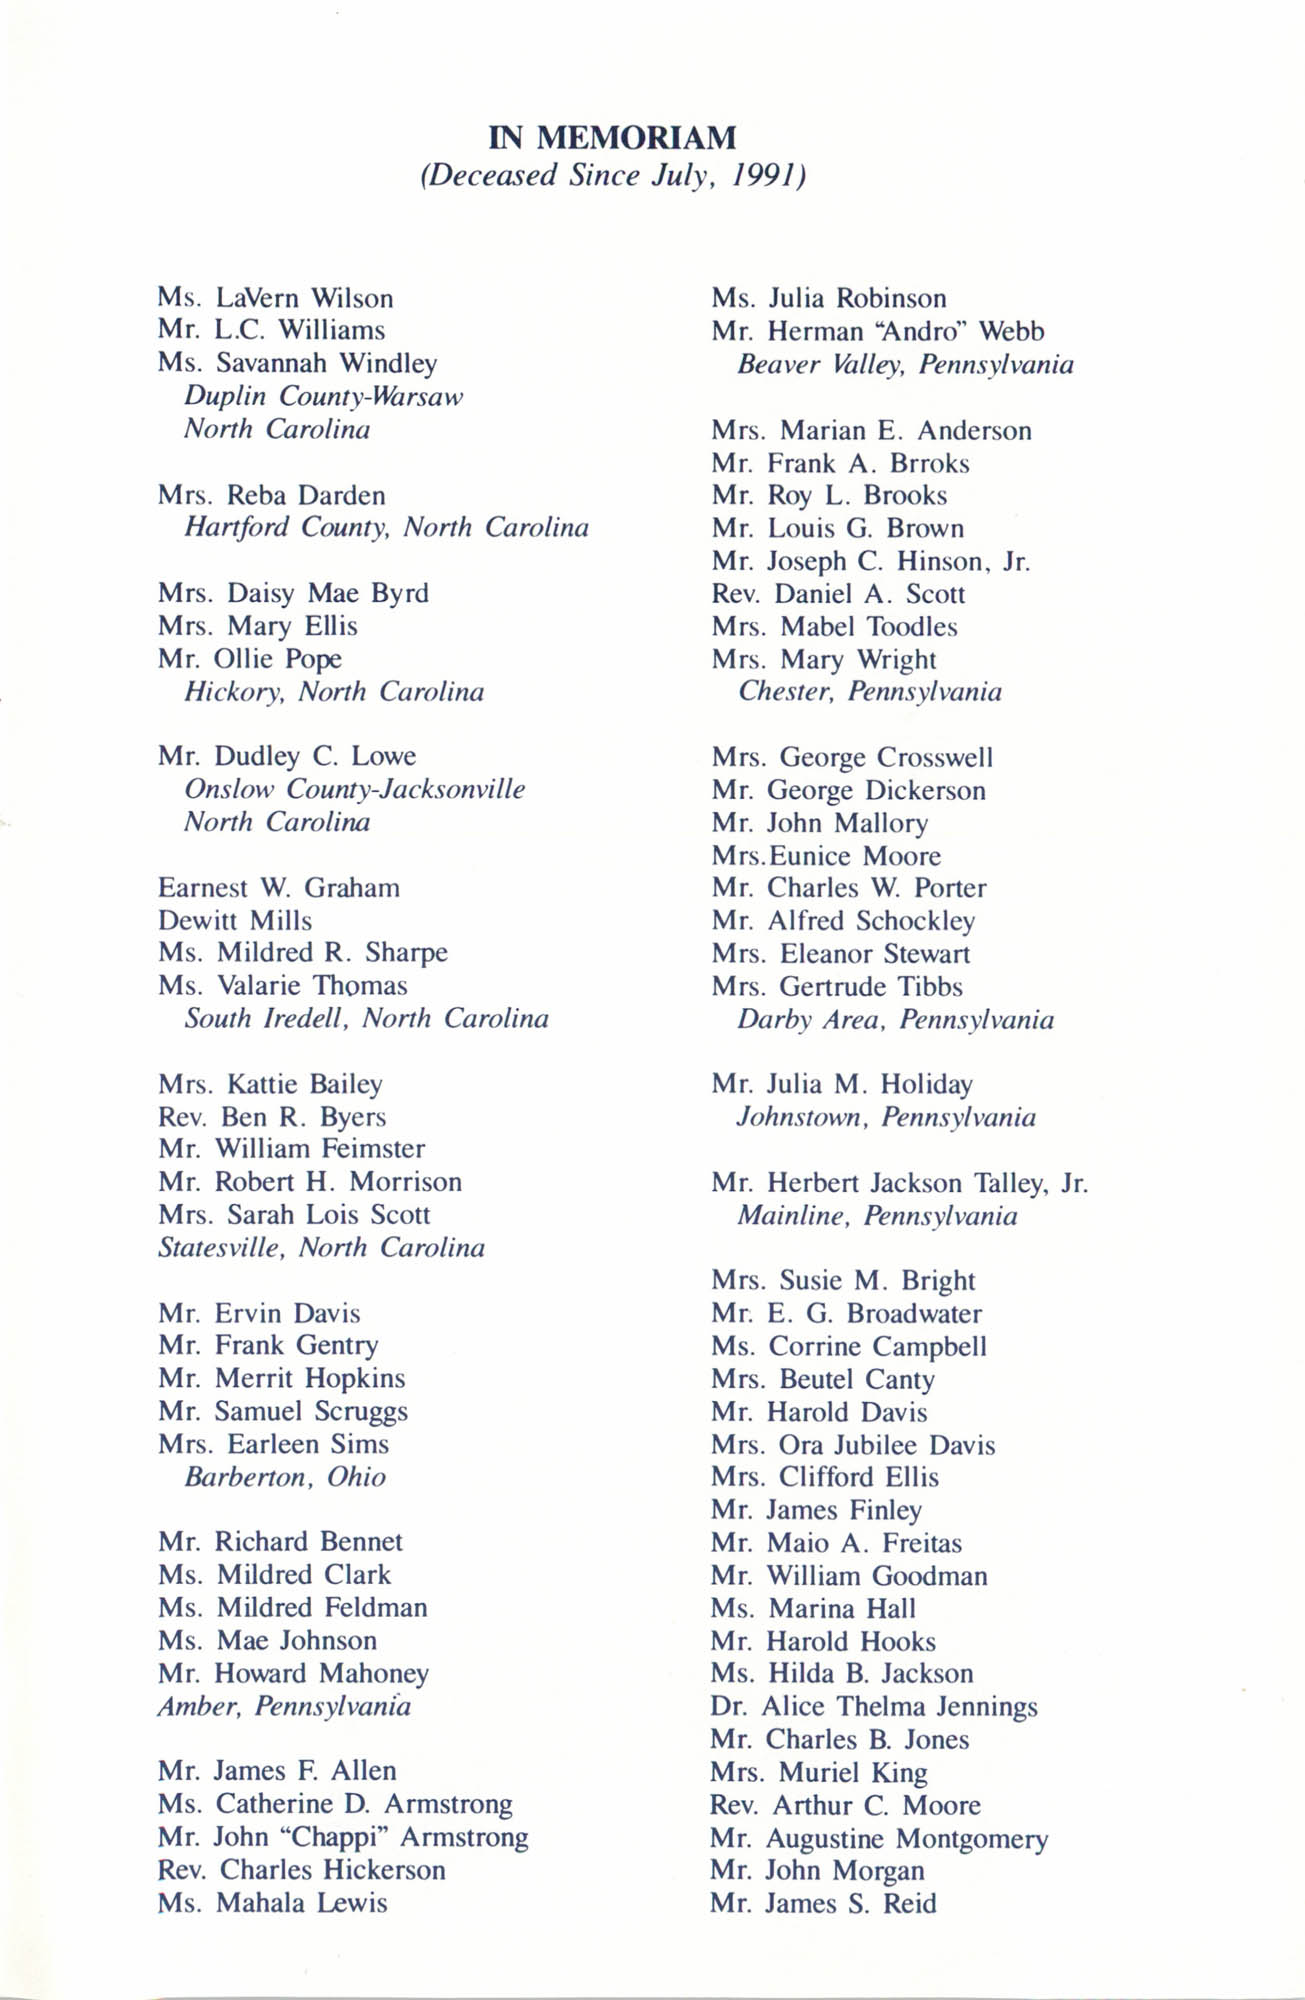 Memorial Service in Tribute to Deceased NAACP Officers and Member, July 12, 1992, Page 8